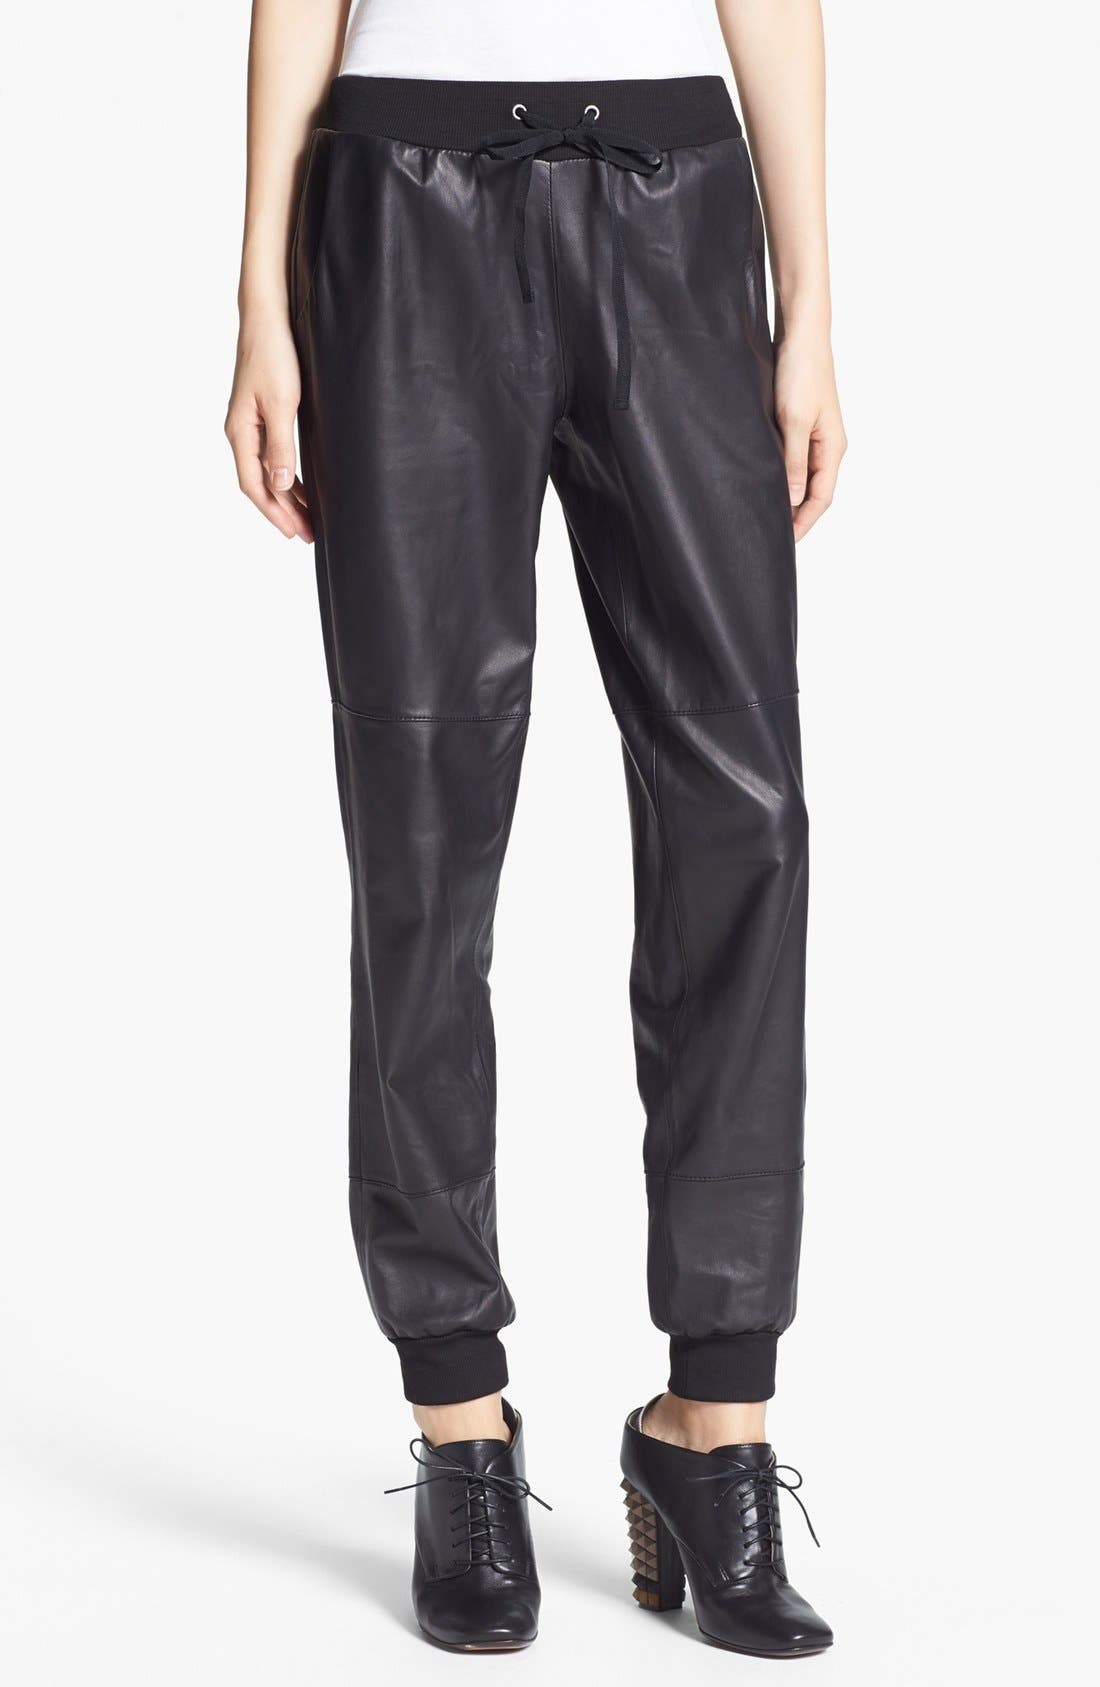 Alternate Image 1 Selected - Elizabeth and James 'Kacey' Leather Sweatpants